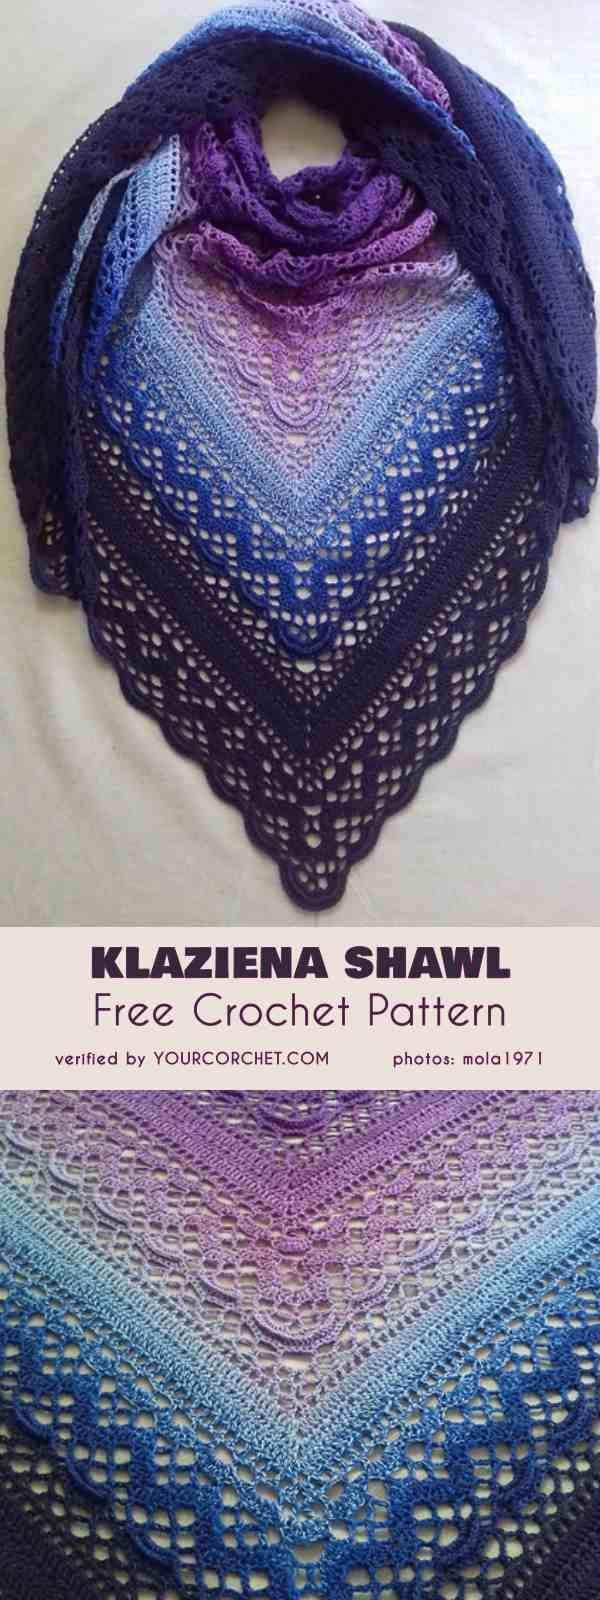 Kostenlose Crochet Shawl Patterns #crochetshawlpatterns